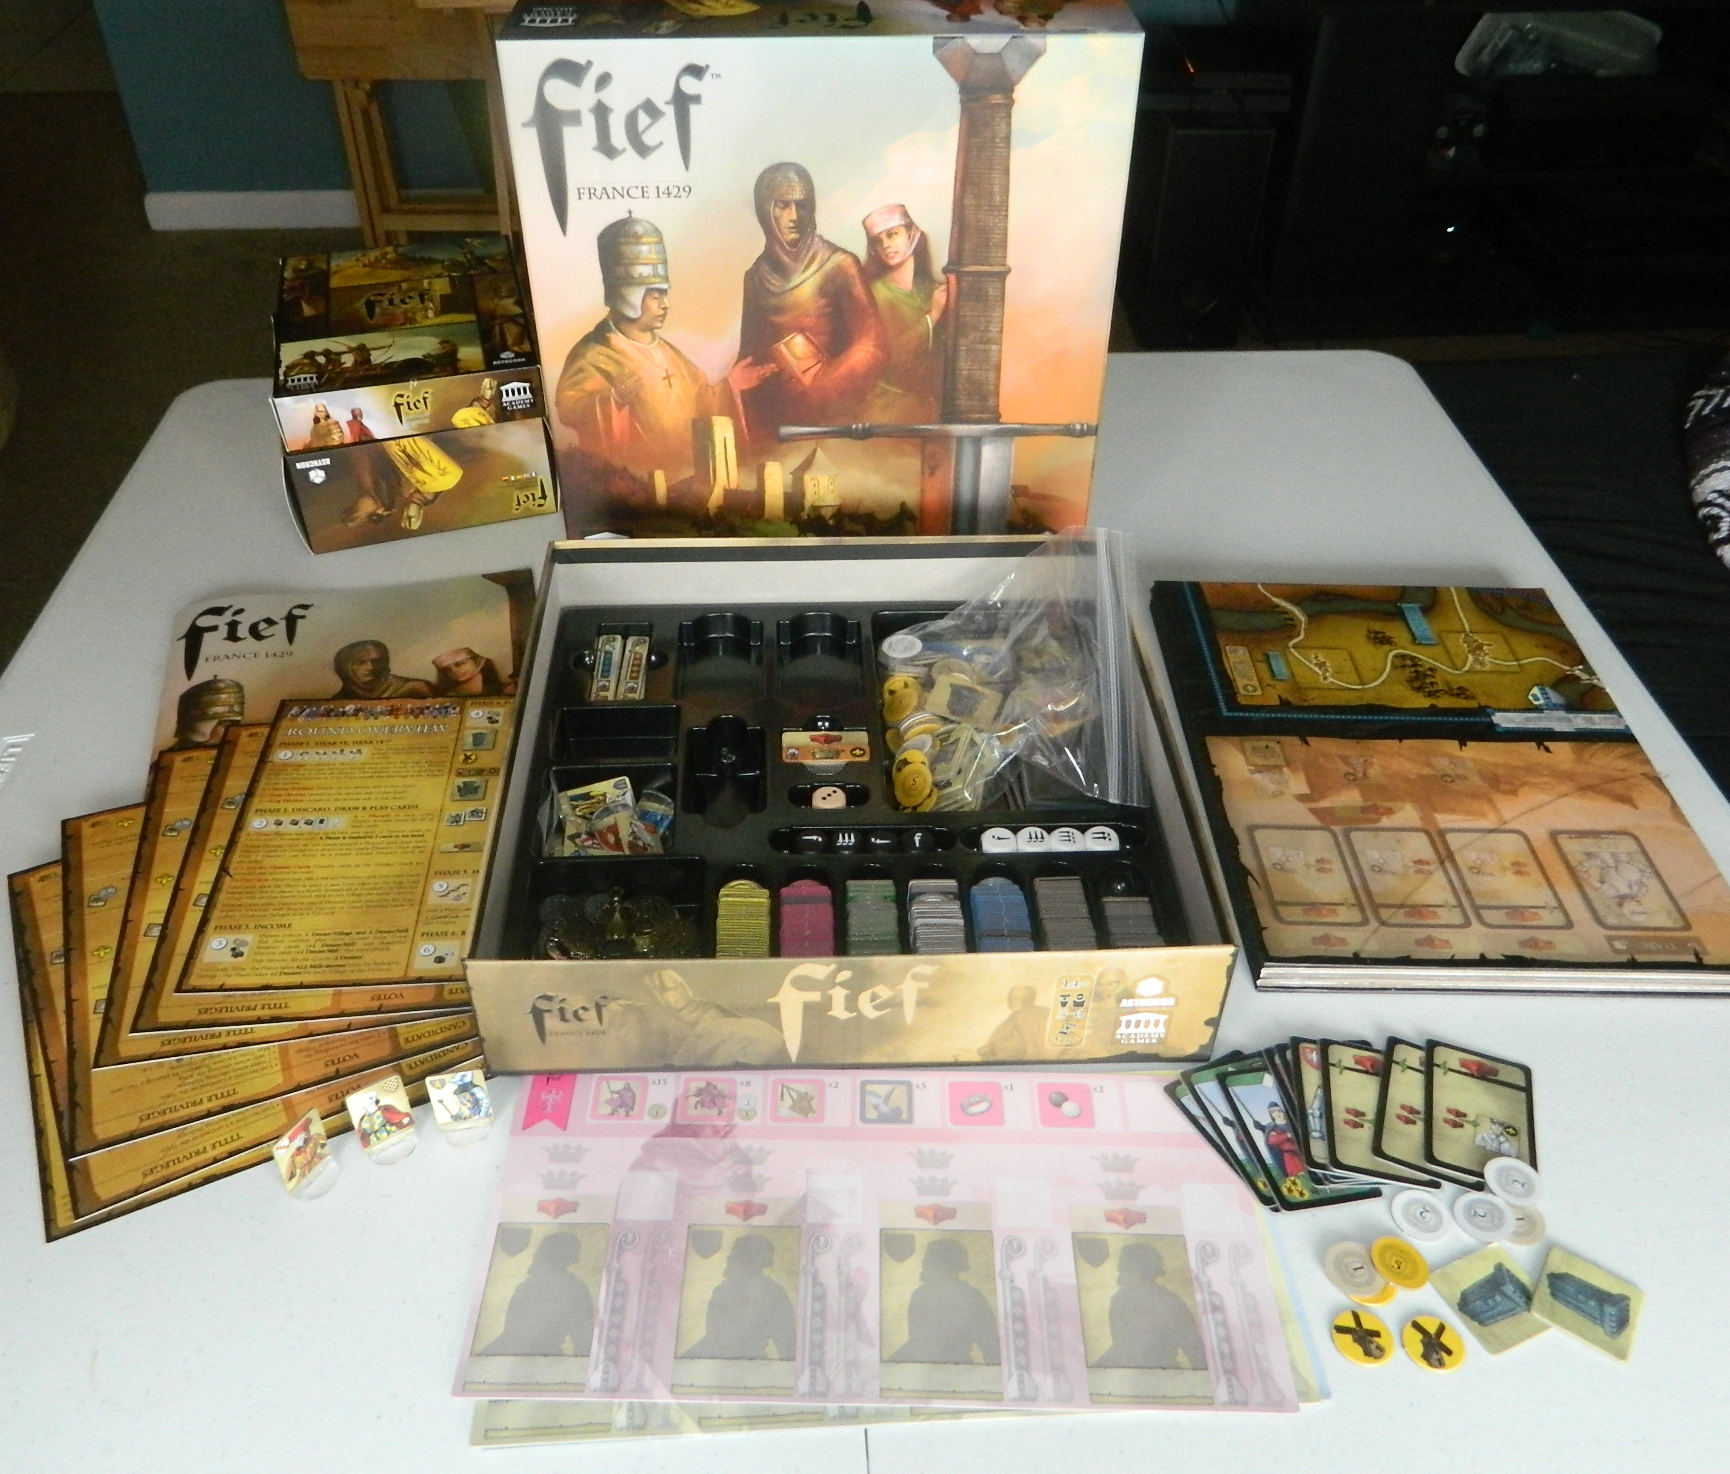 Review: Fief France 1429